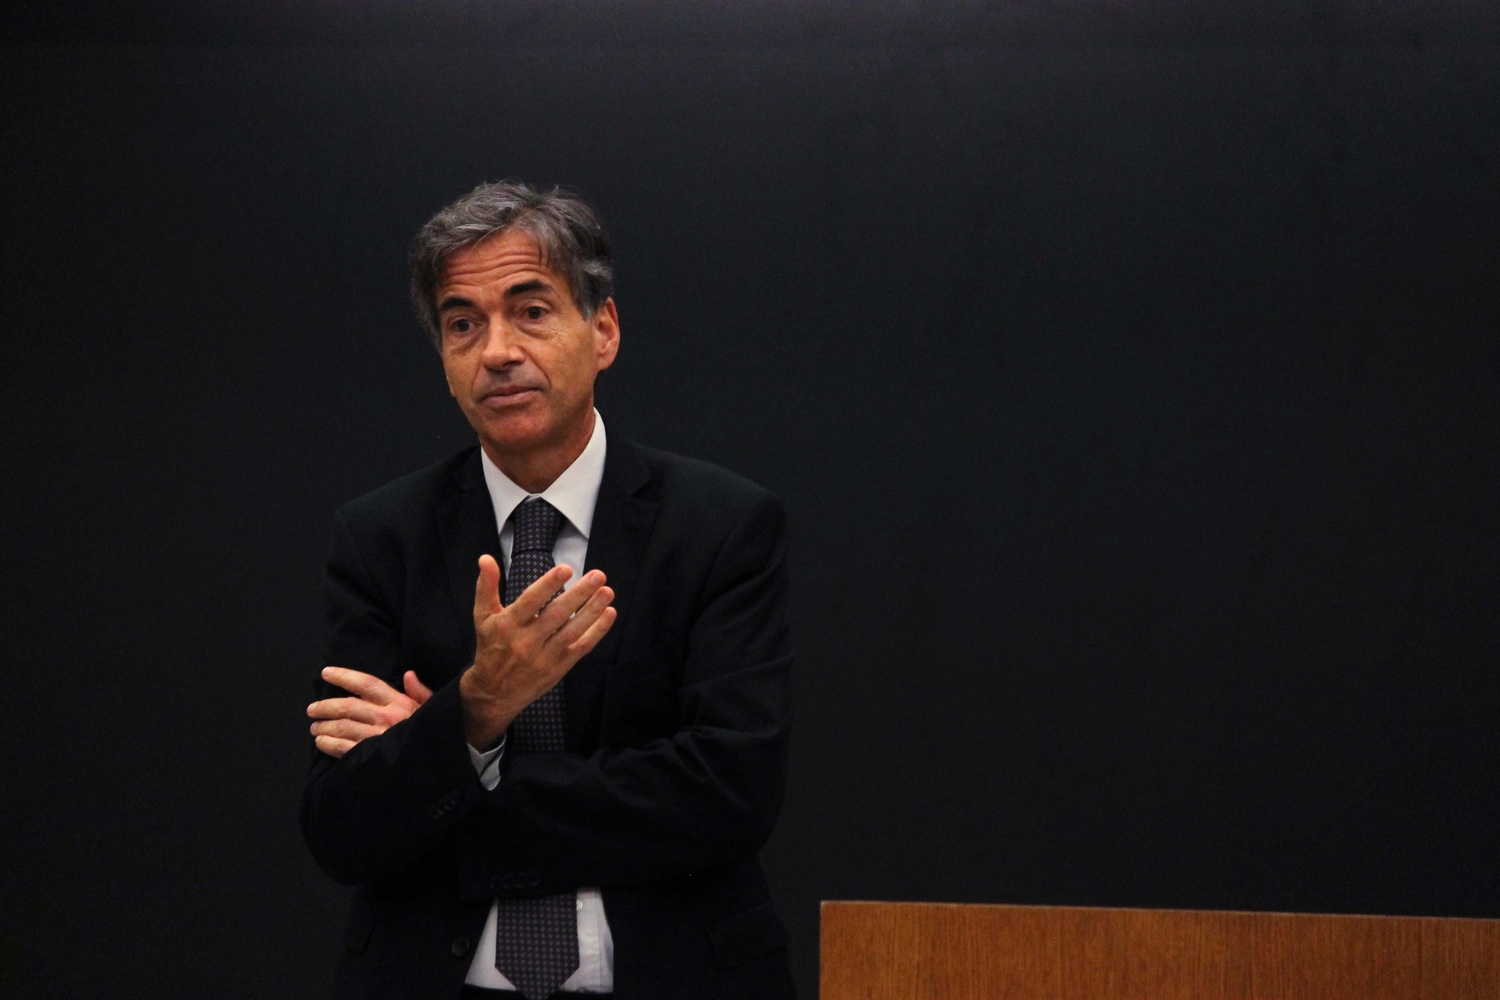 Luis Fernandes, vice-minister of sports for Brazil, speaks about how sports like the FIFA World Cup 2014 can impact the economy and people of Brazil on Monday afternoon in Wasserstein Hall.